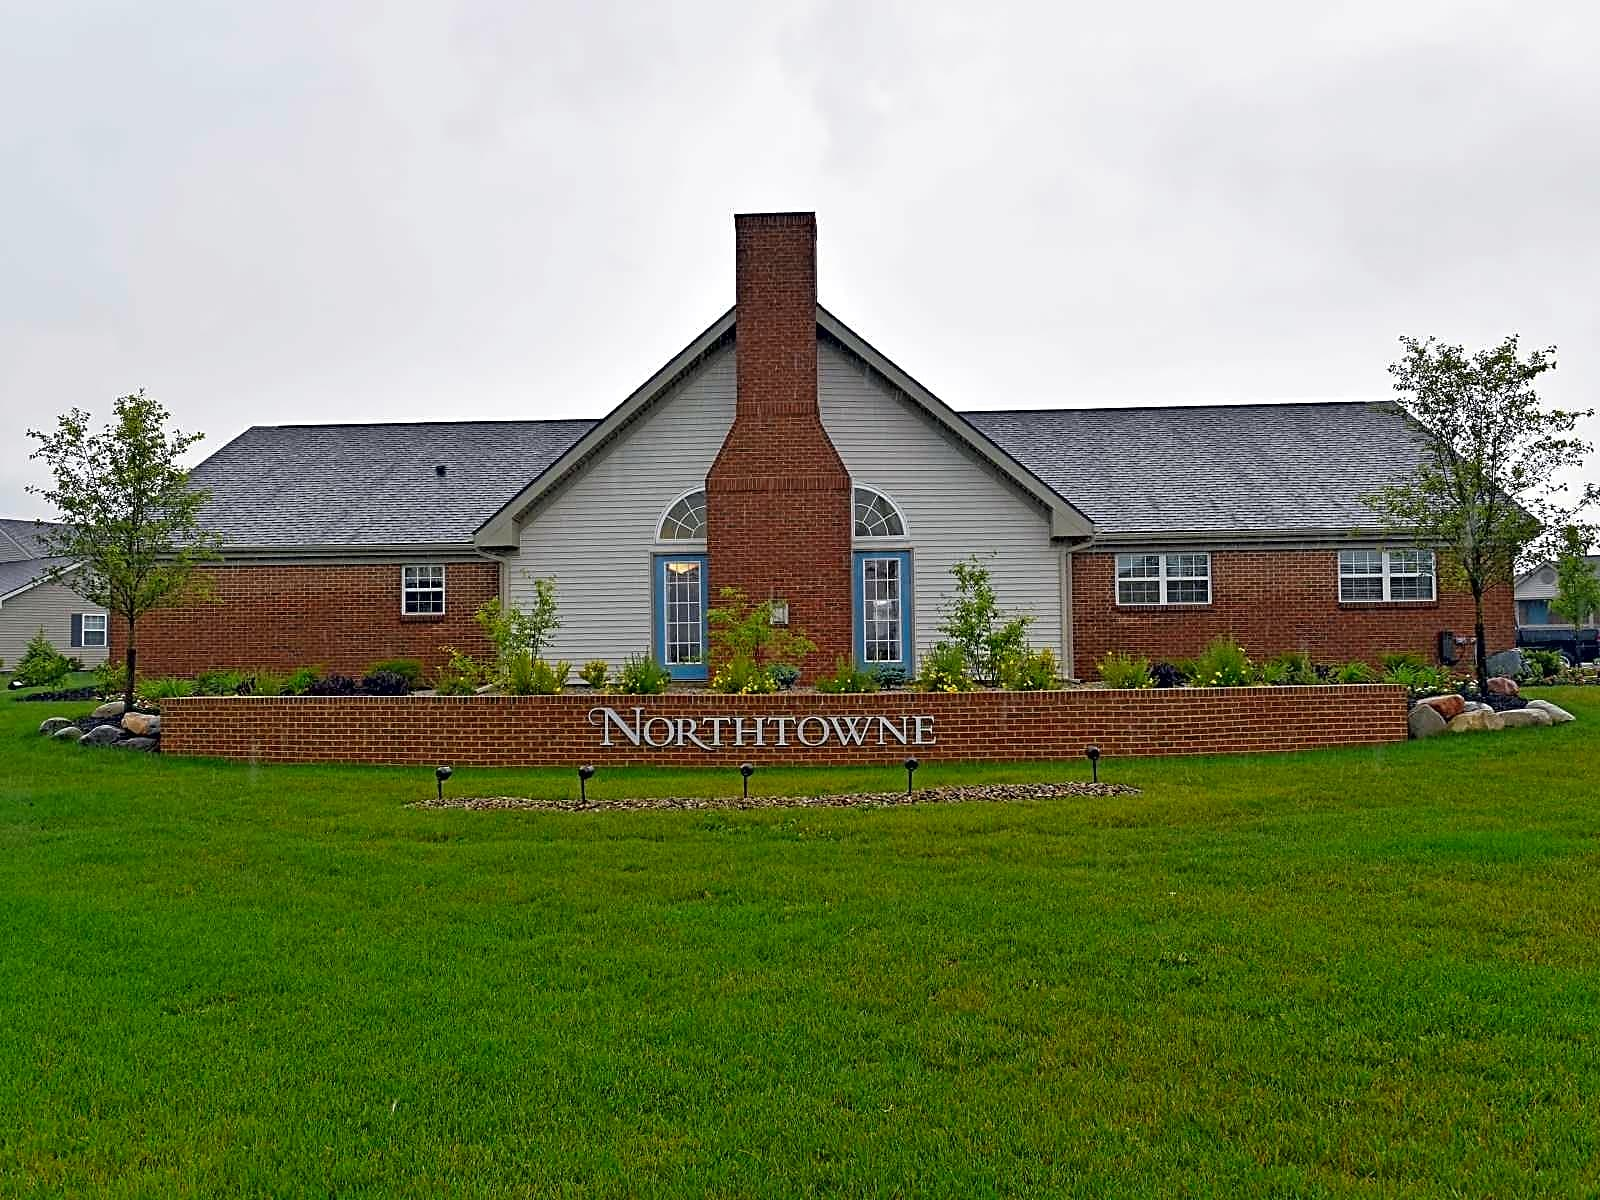 Apartments Near Edison Northtowne Apartments for Edison Community College Students in Piqua, OH